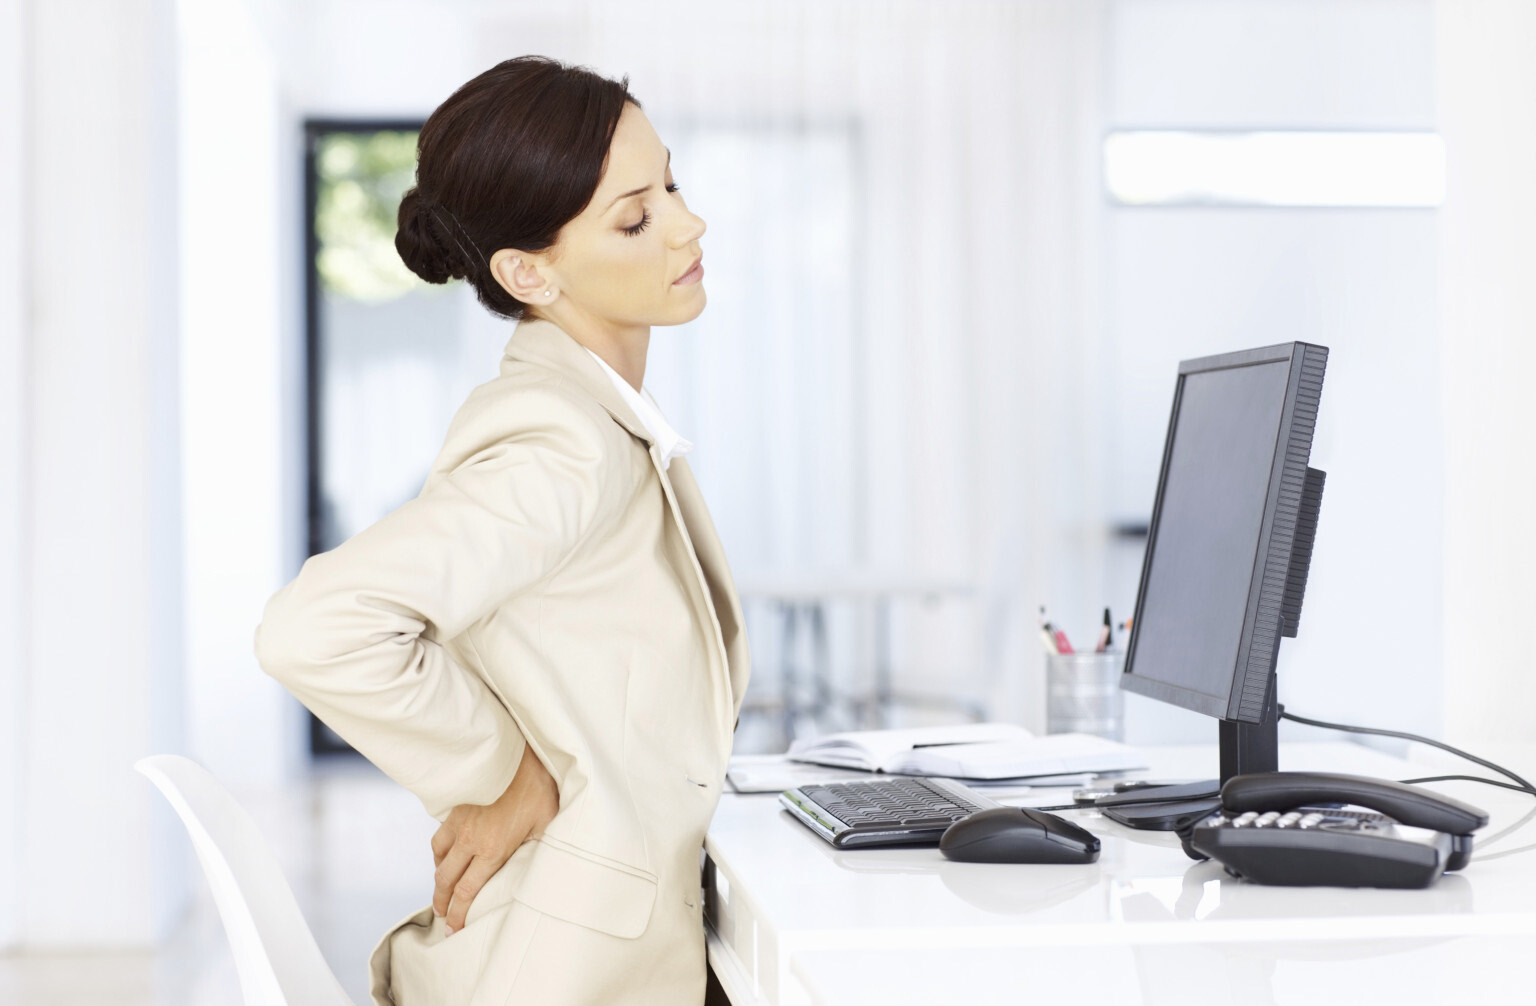 Lady in office looking at computer having back pain